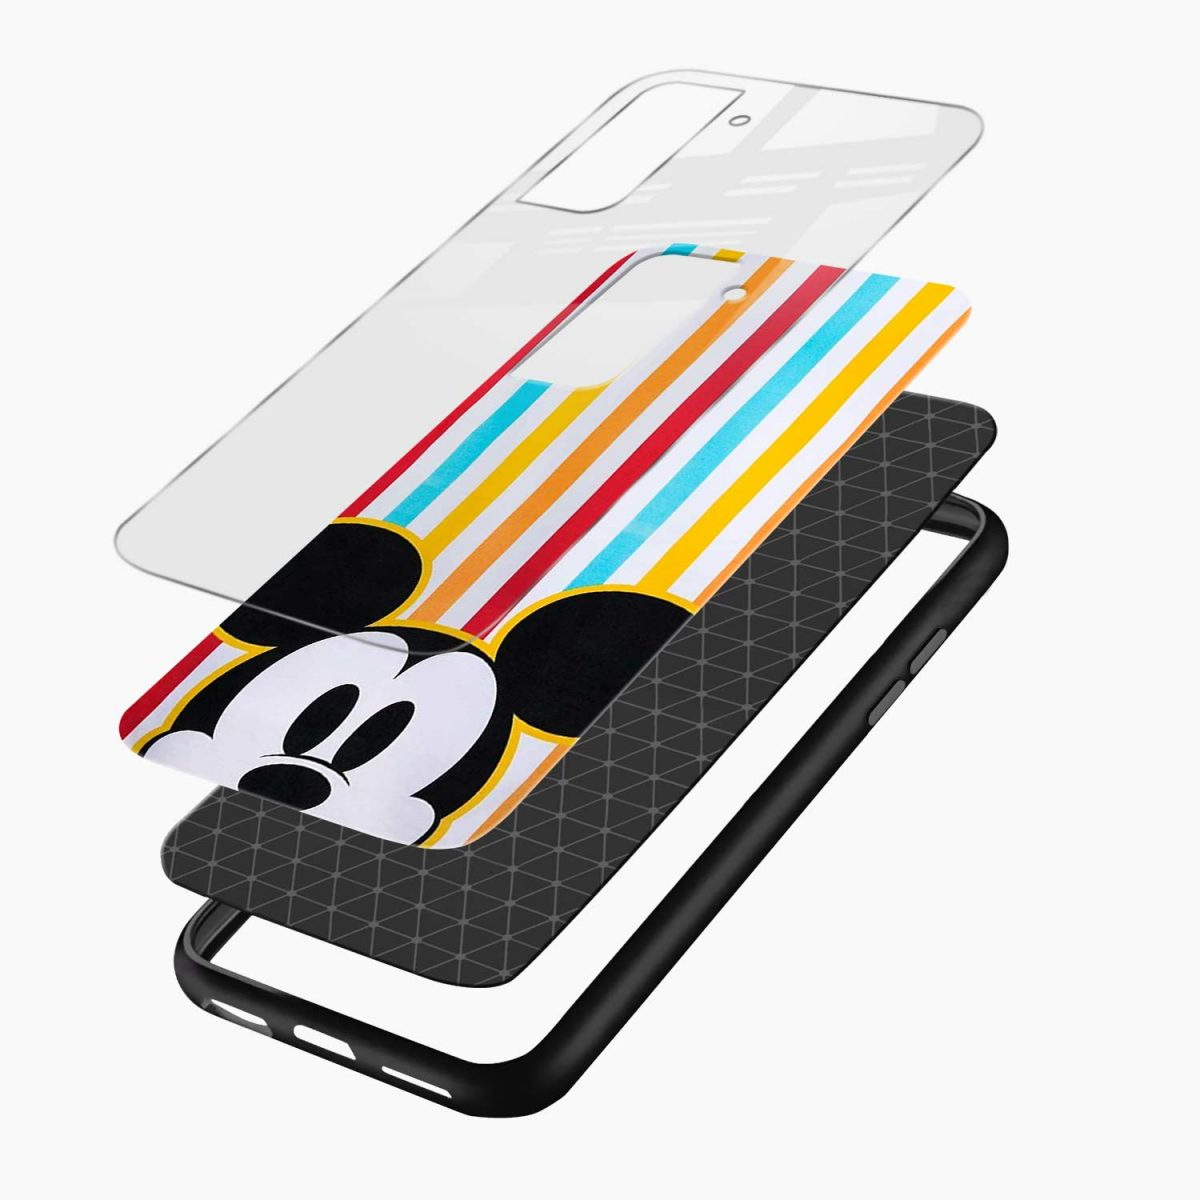 rigid spy mickey mouse layers view samsung s21 plug back cover